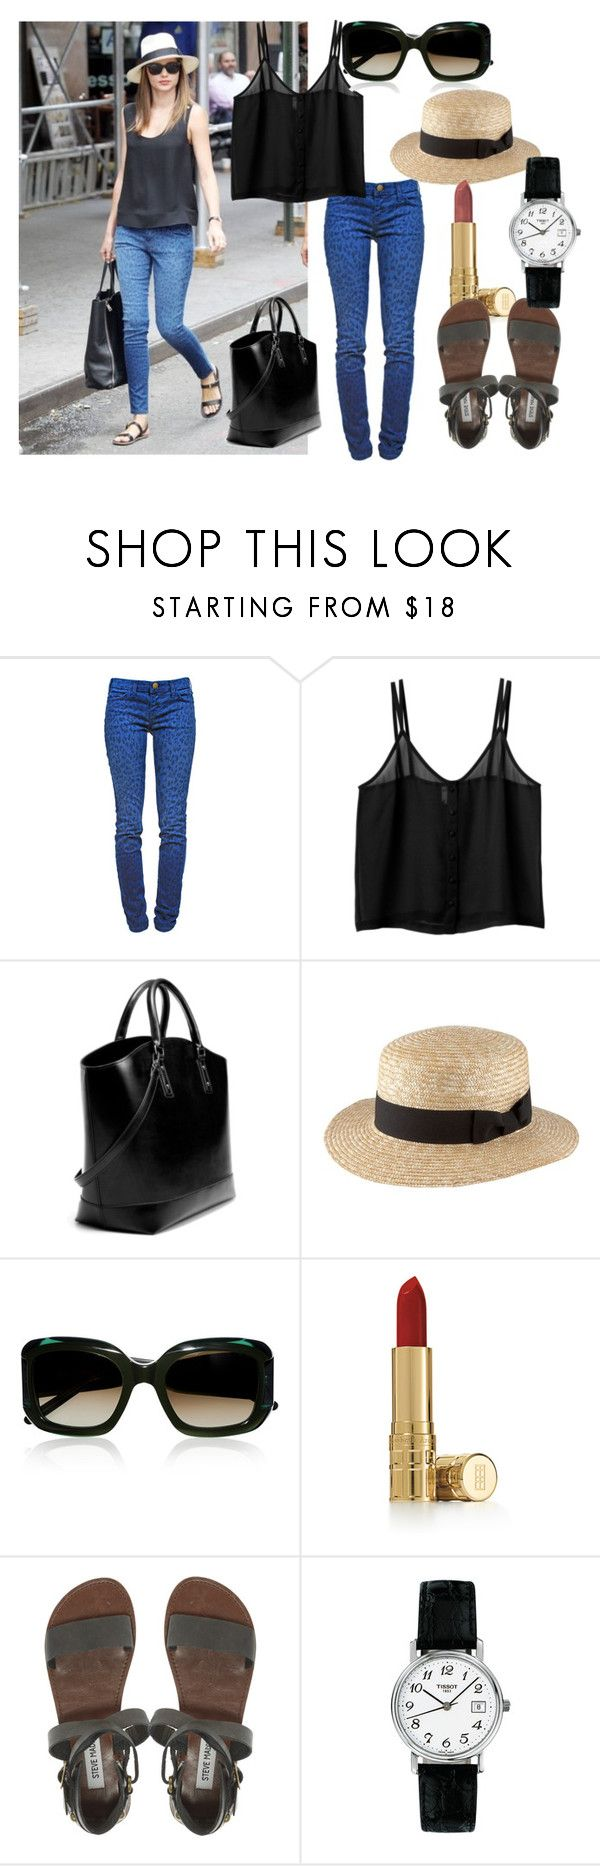 """Oh, to be married to Orlando Bloom"" by actuelle ❤ liked on Polyvore featuring Sephora Collection, Current/Elliott, Monki, Zara, H! by Henry Holland, Marni, Elizabeth Arden, Steve Madden and Tissot"